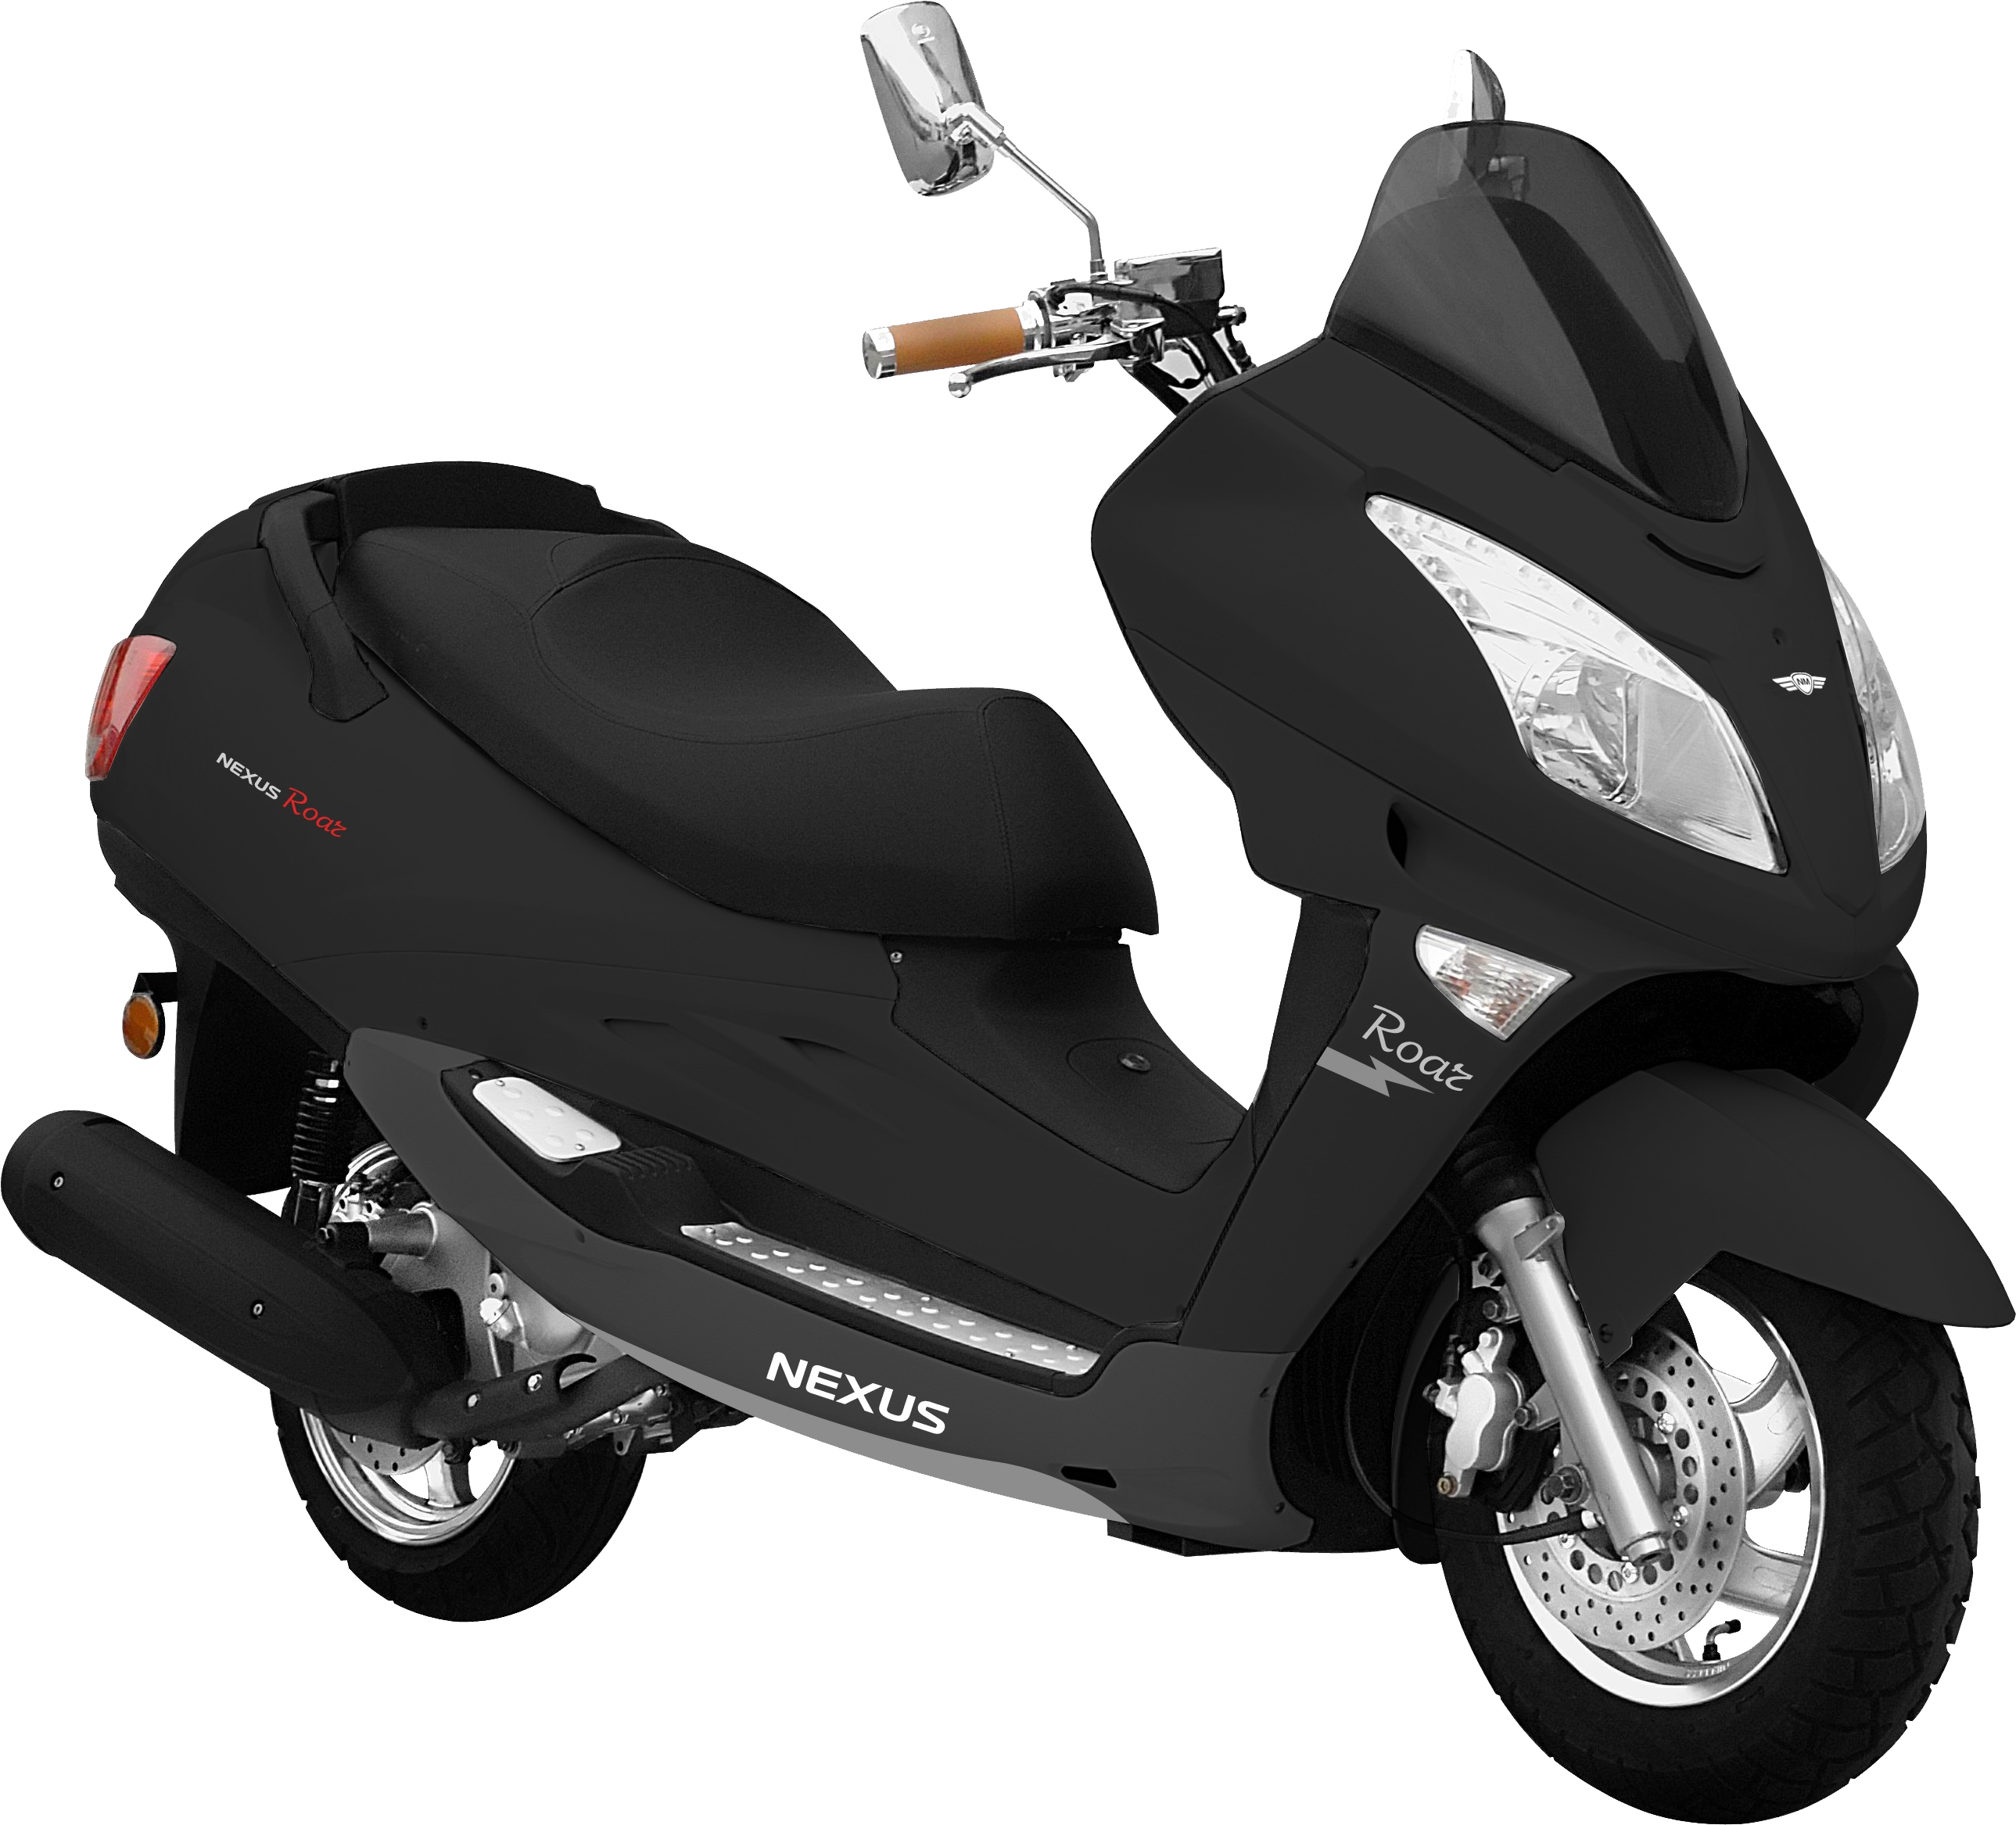 Scooter HD PNG - 120097